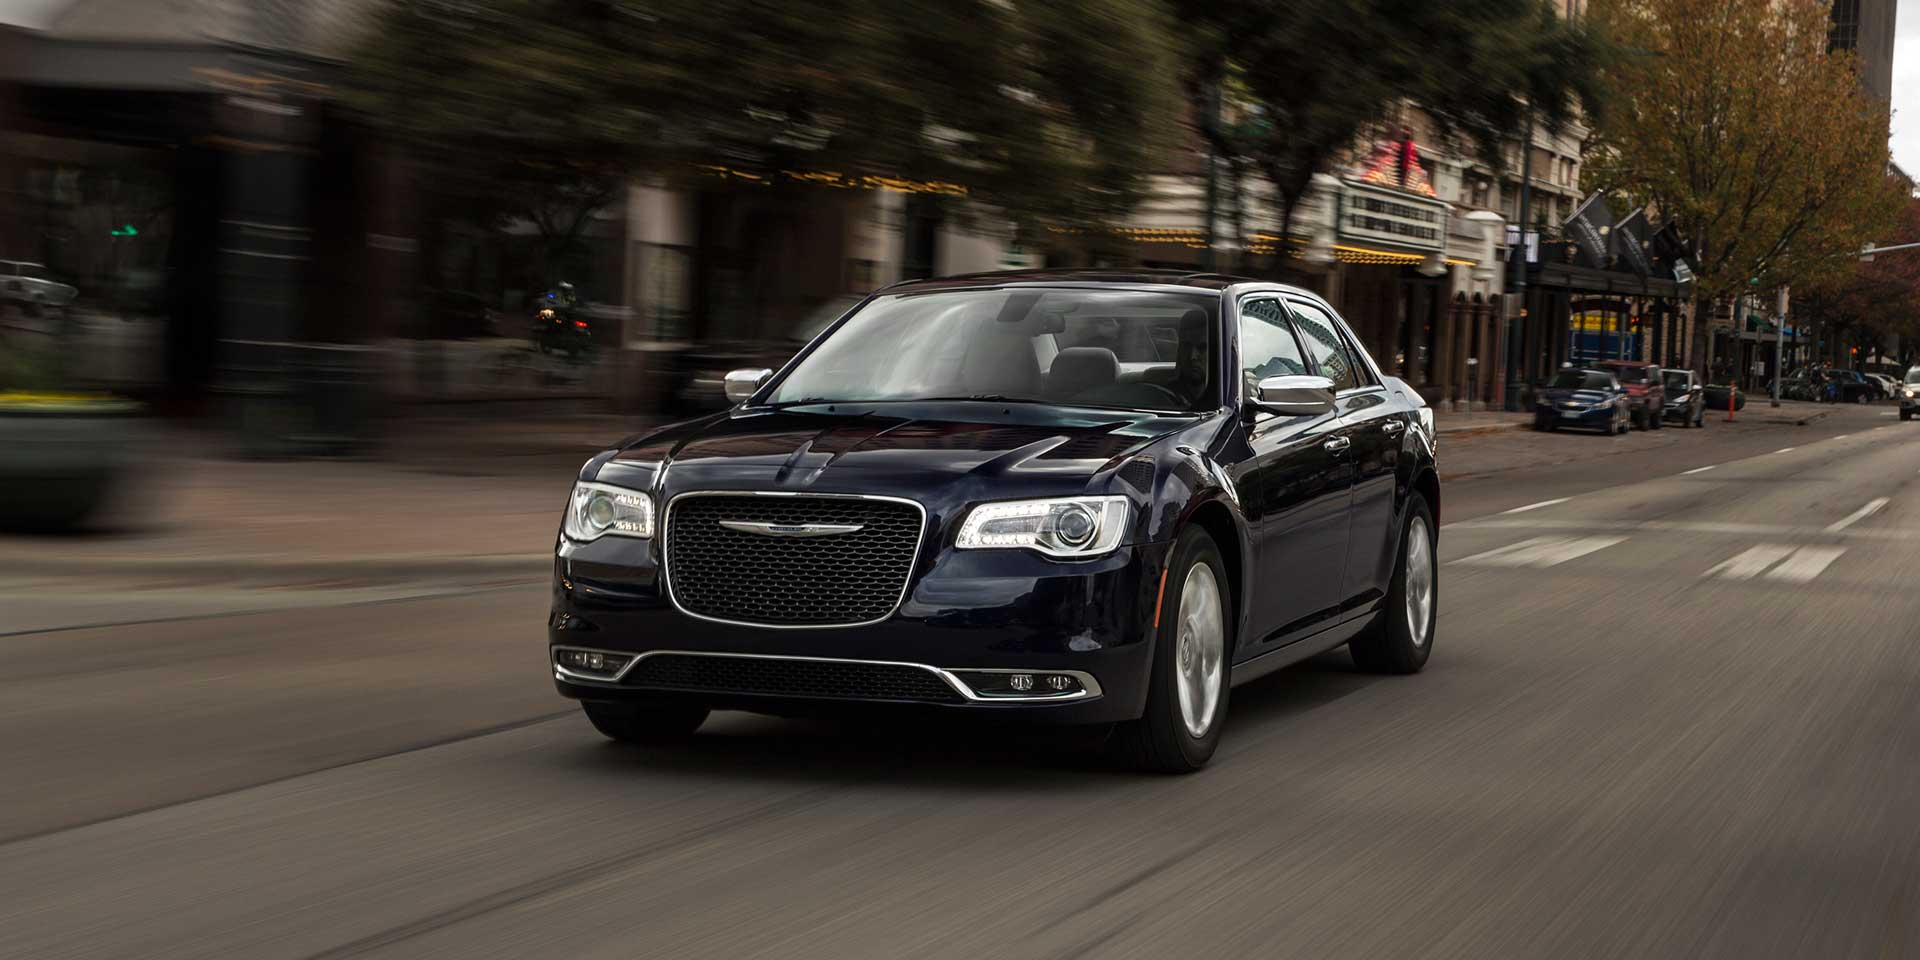 2016 CHRYSLER 300: MoPar fans visiting the 2016 Chicago Auto Show will be  checking out the many refinements to the 2016 Chrysler 300 four-door large  sedan.